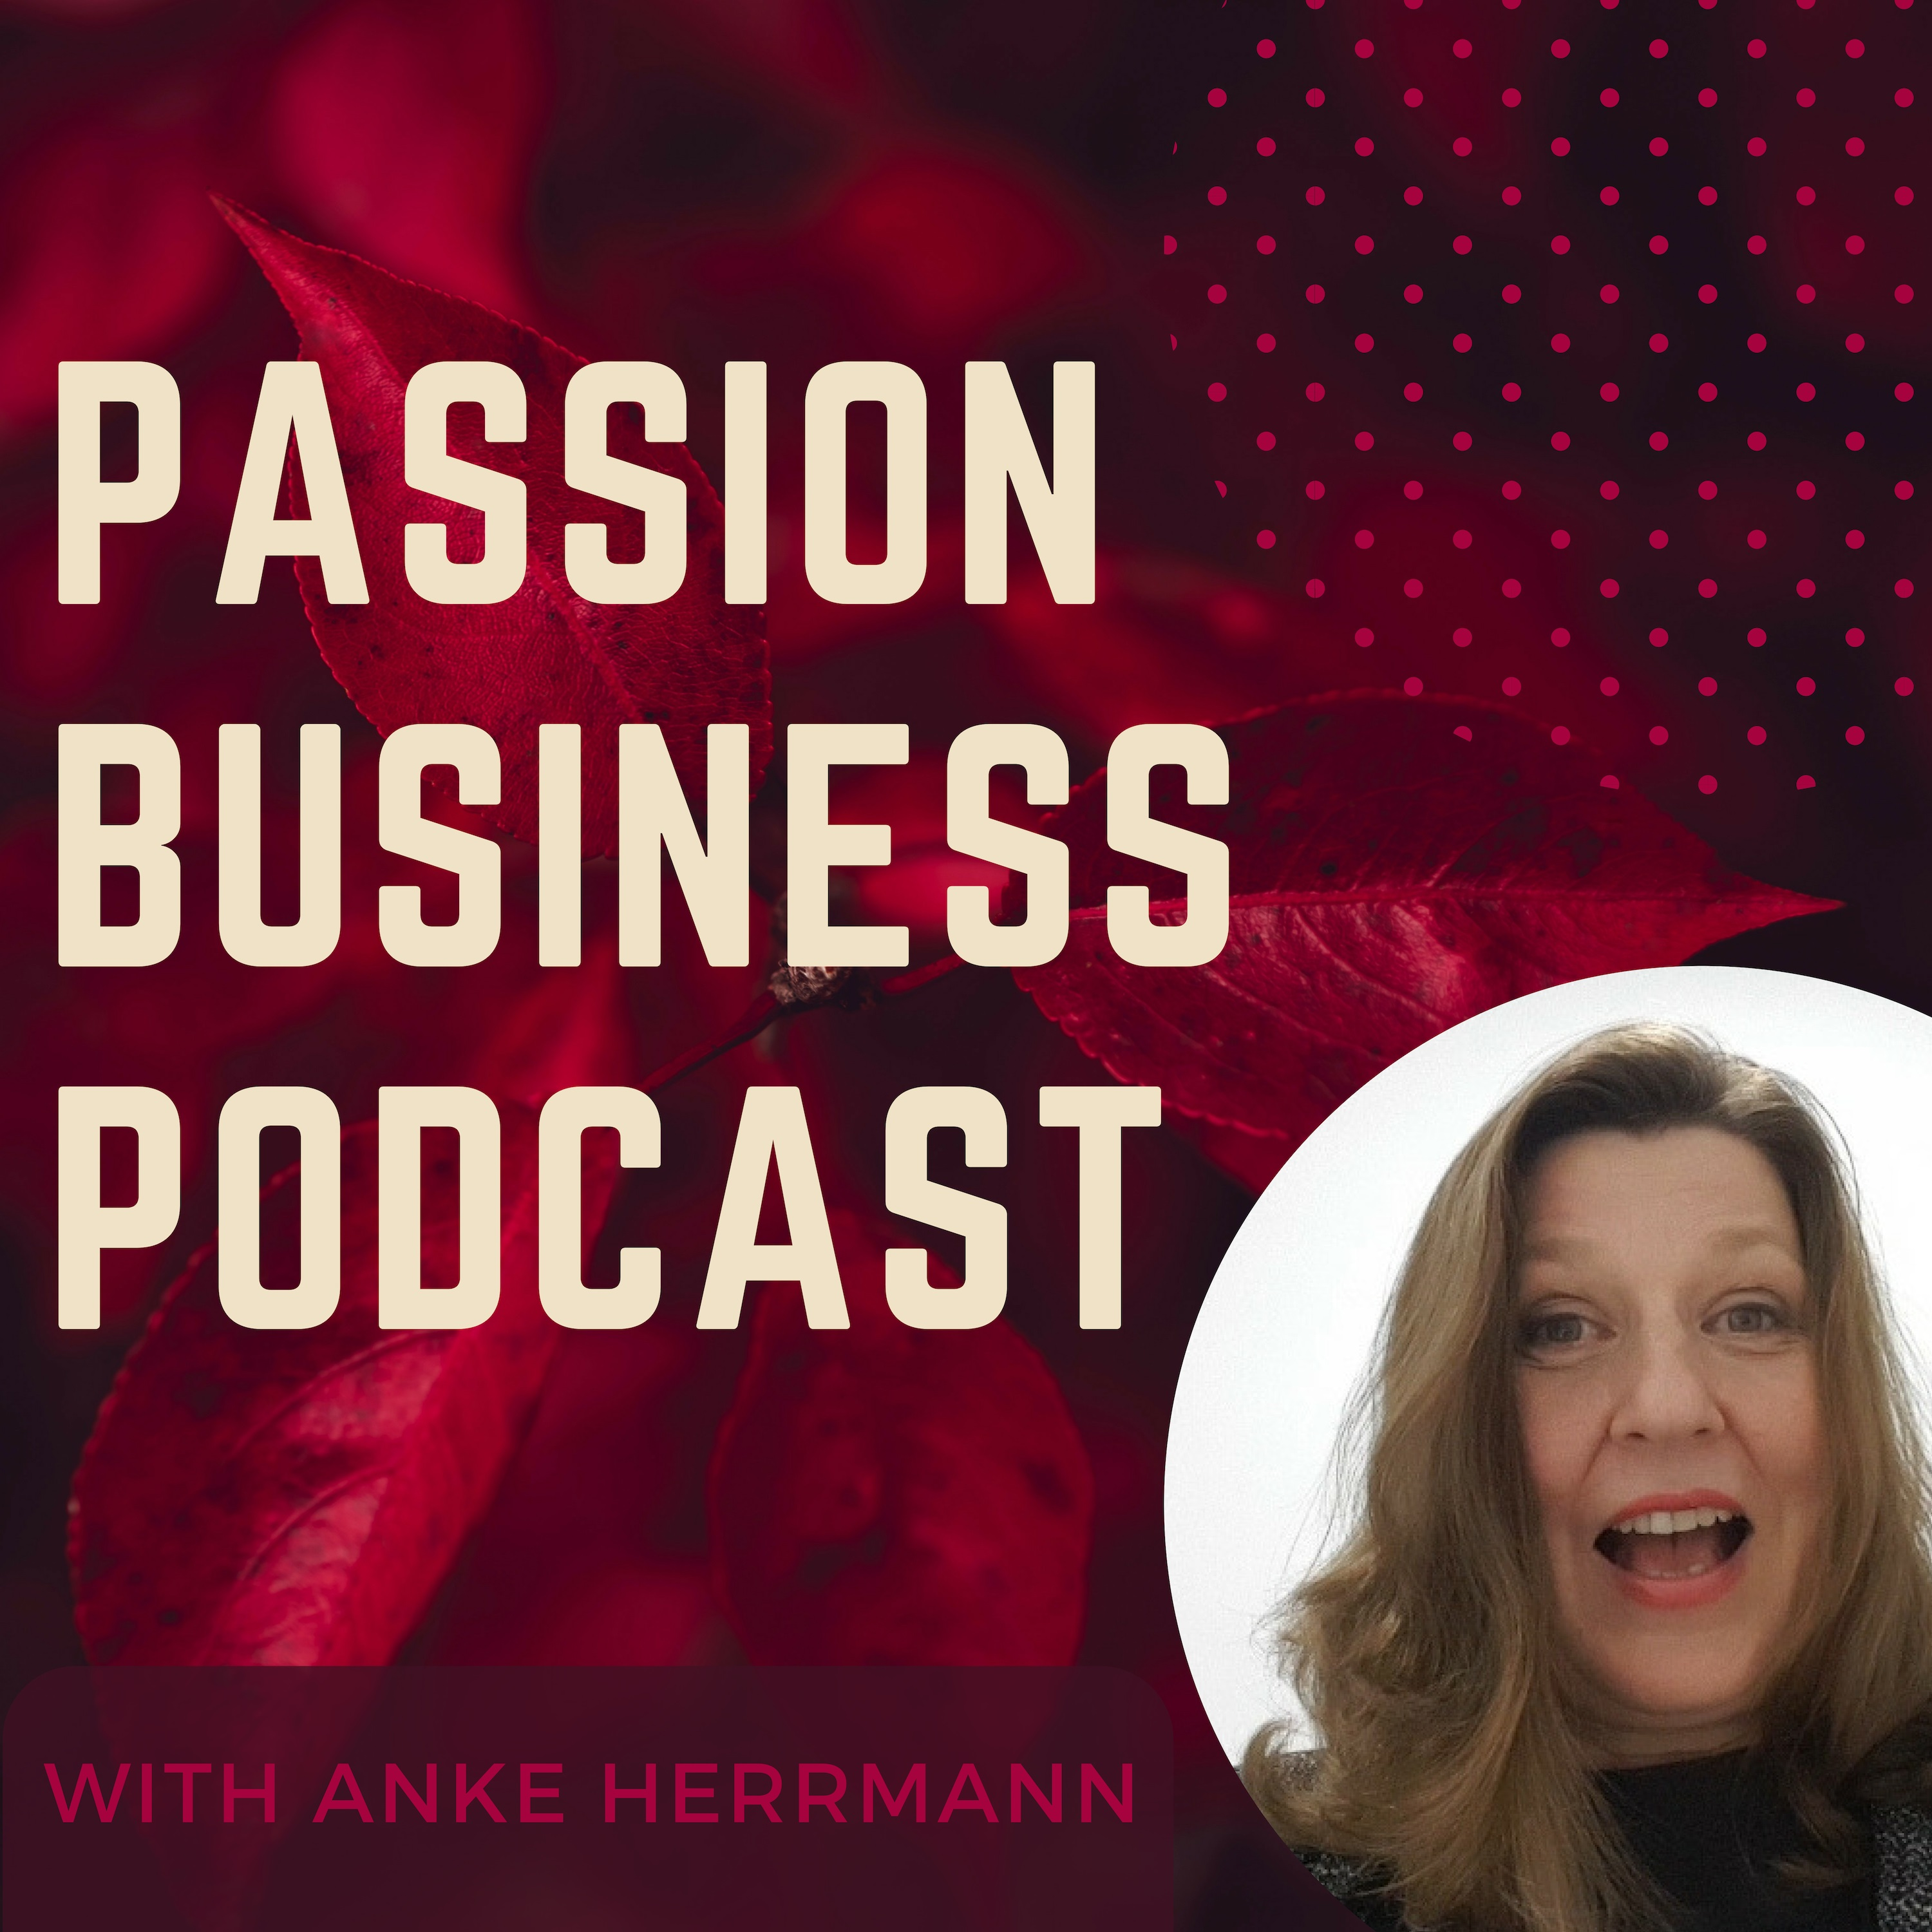 Passion Business Podcast  Episode 12: Dr. Bere  Work You Love Coach